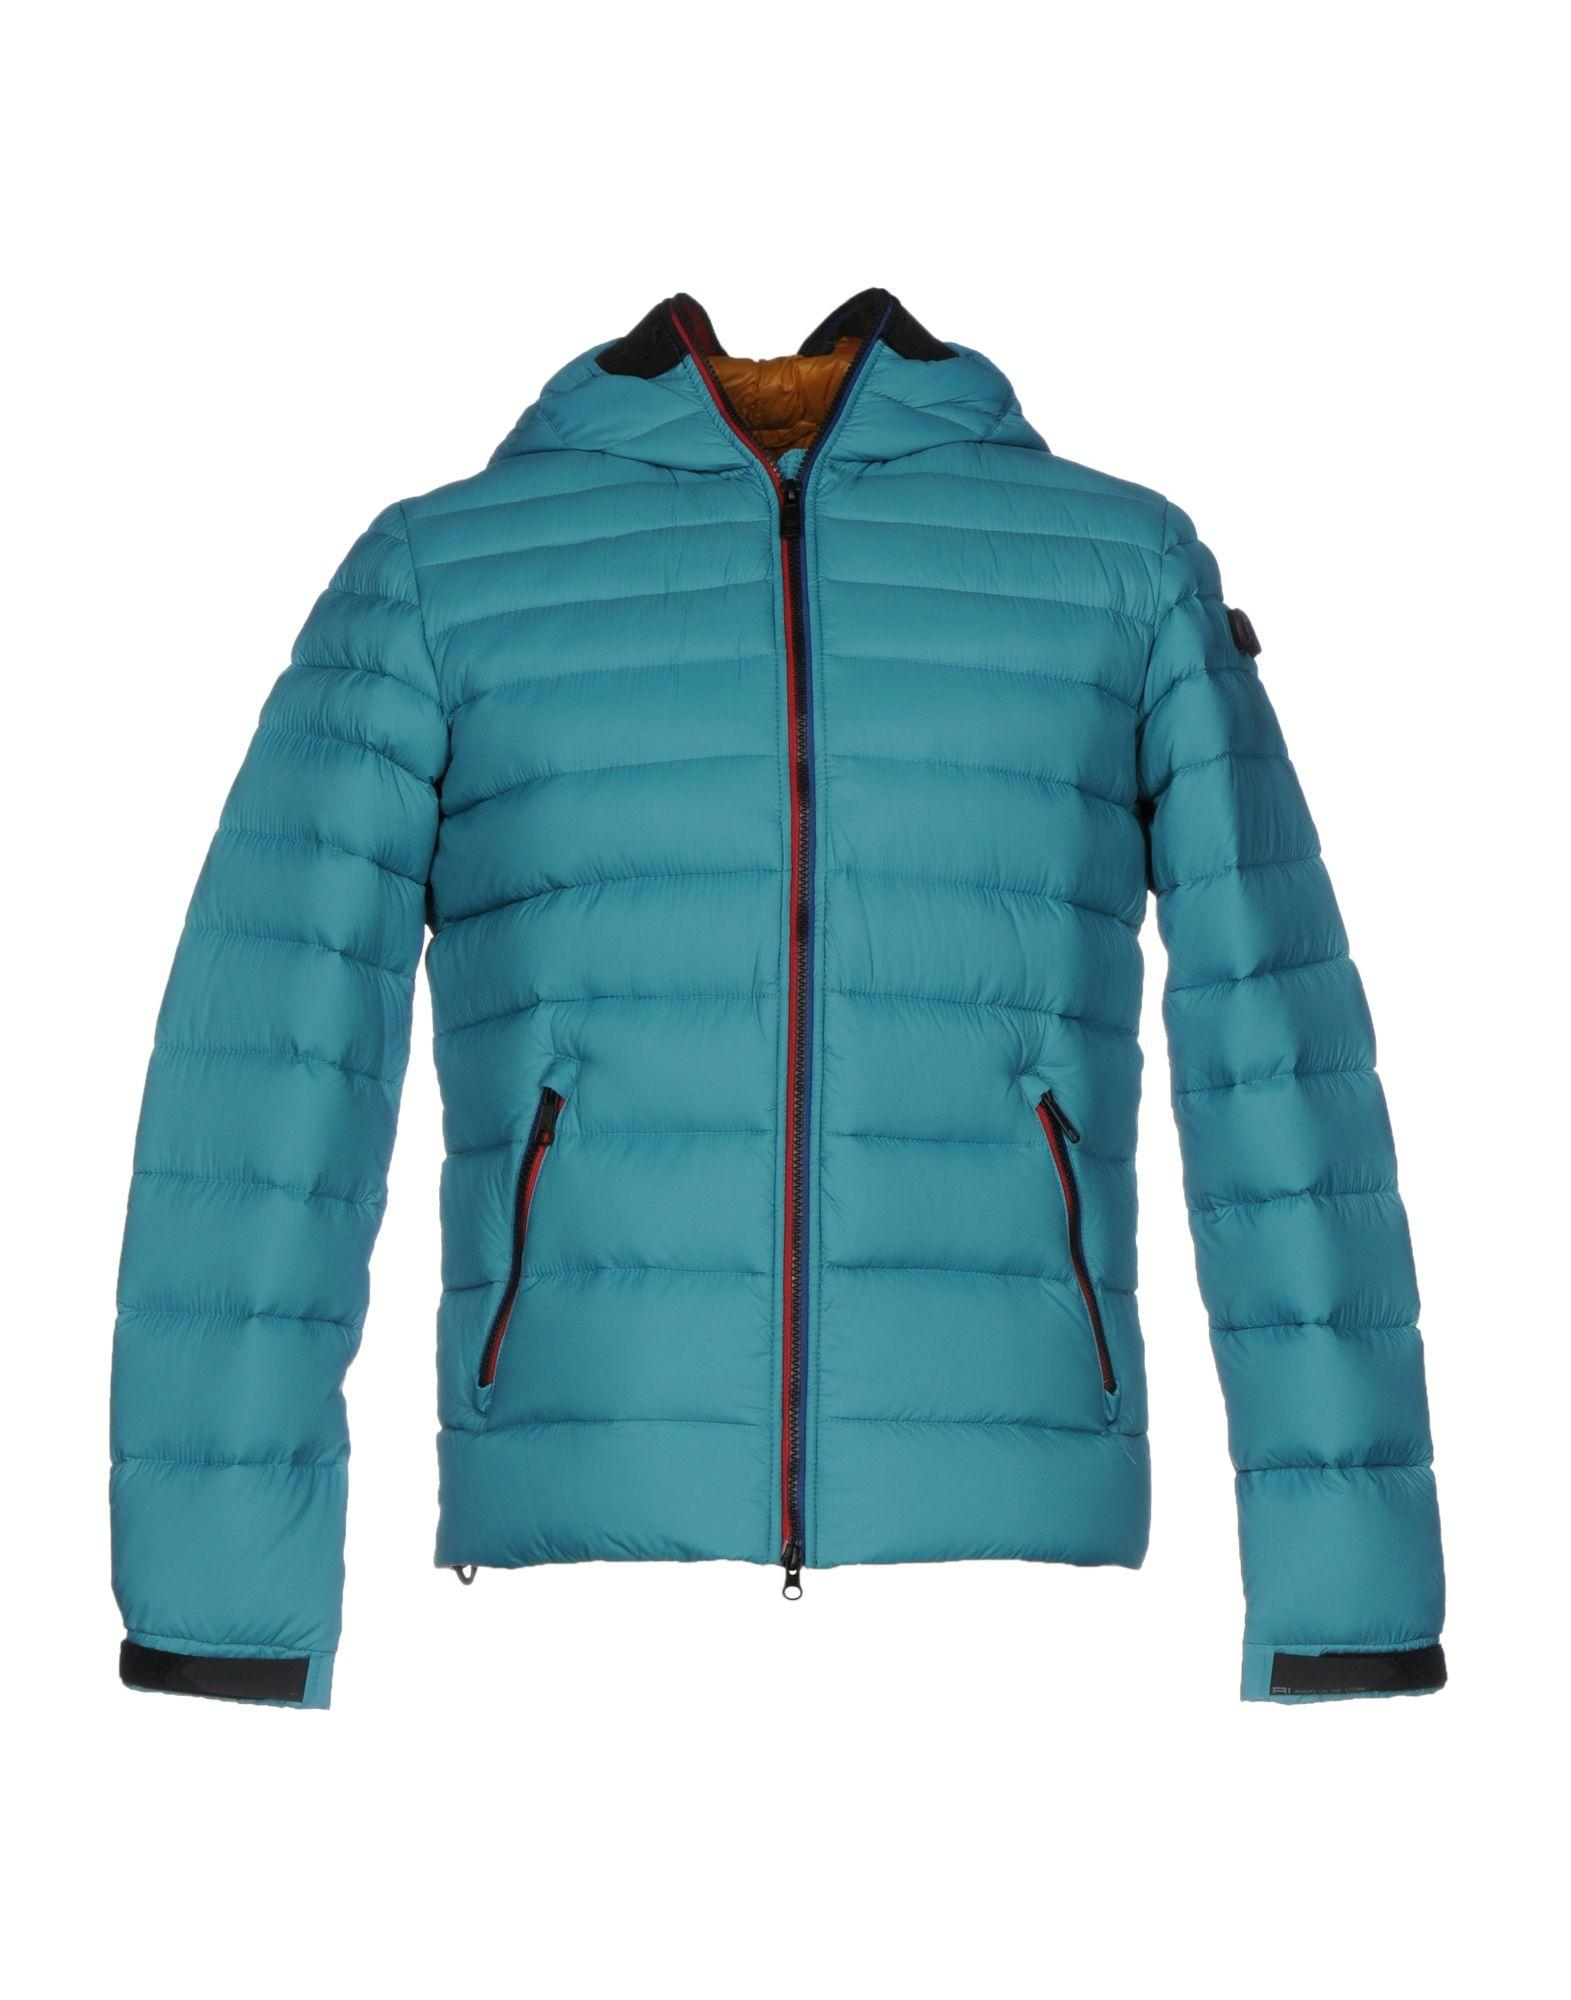 Ai Riders On The Storm Down Jacket In Turquoise